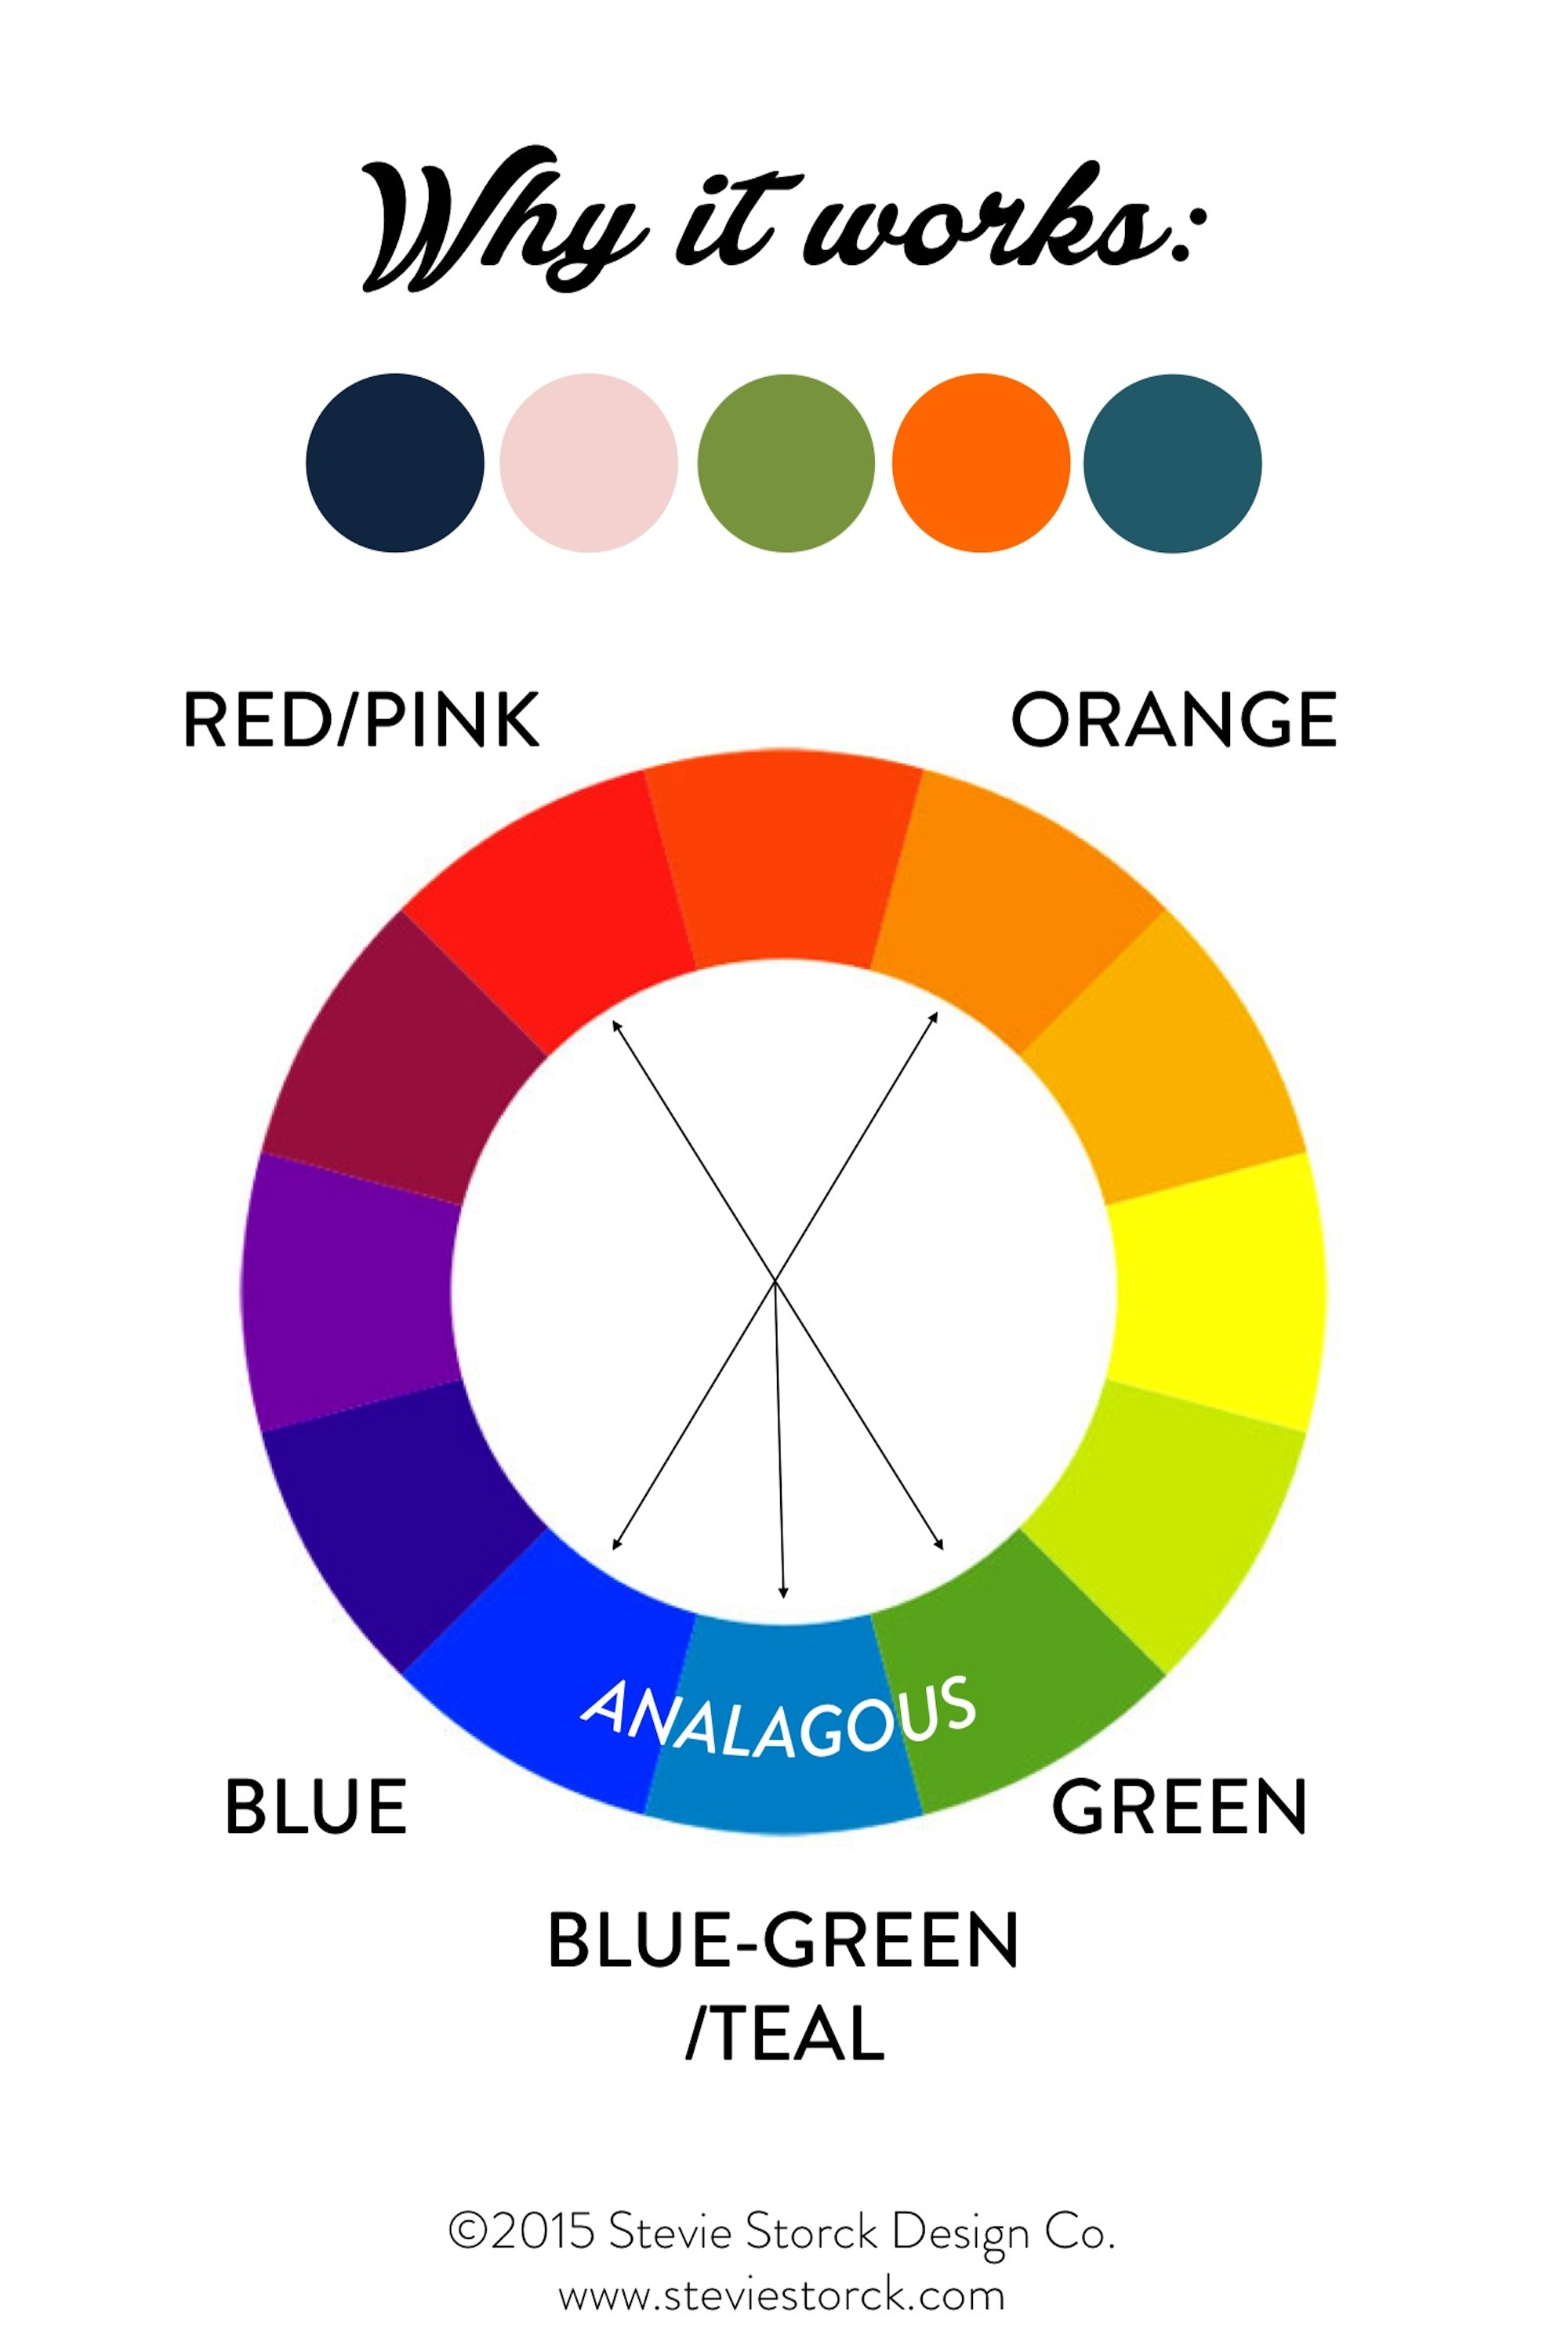 Color Theory Rectangular Tetradic Color Scheme or Accented Analagous with Split Complements